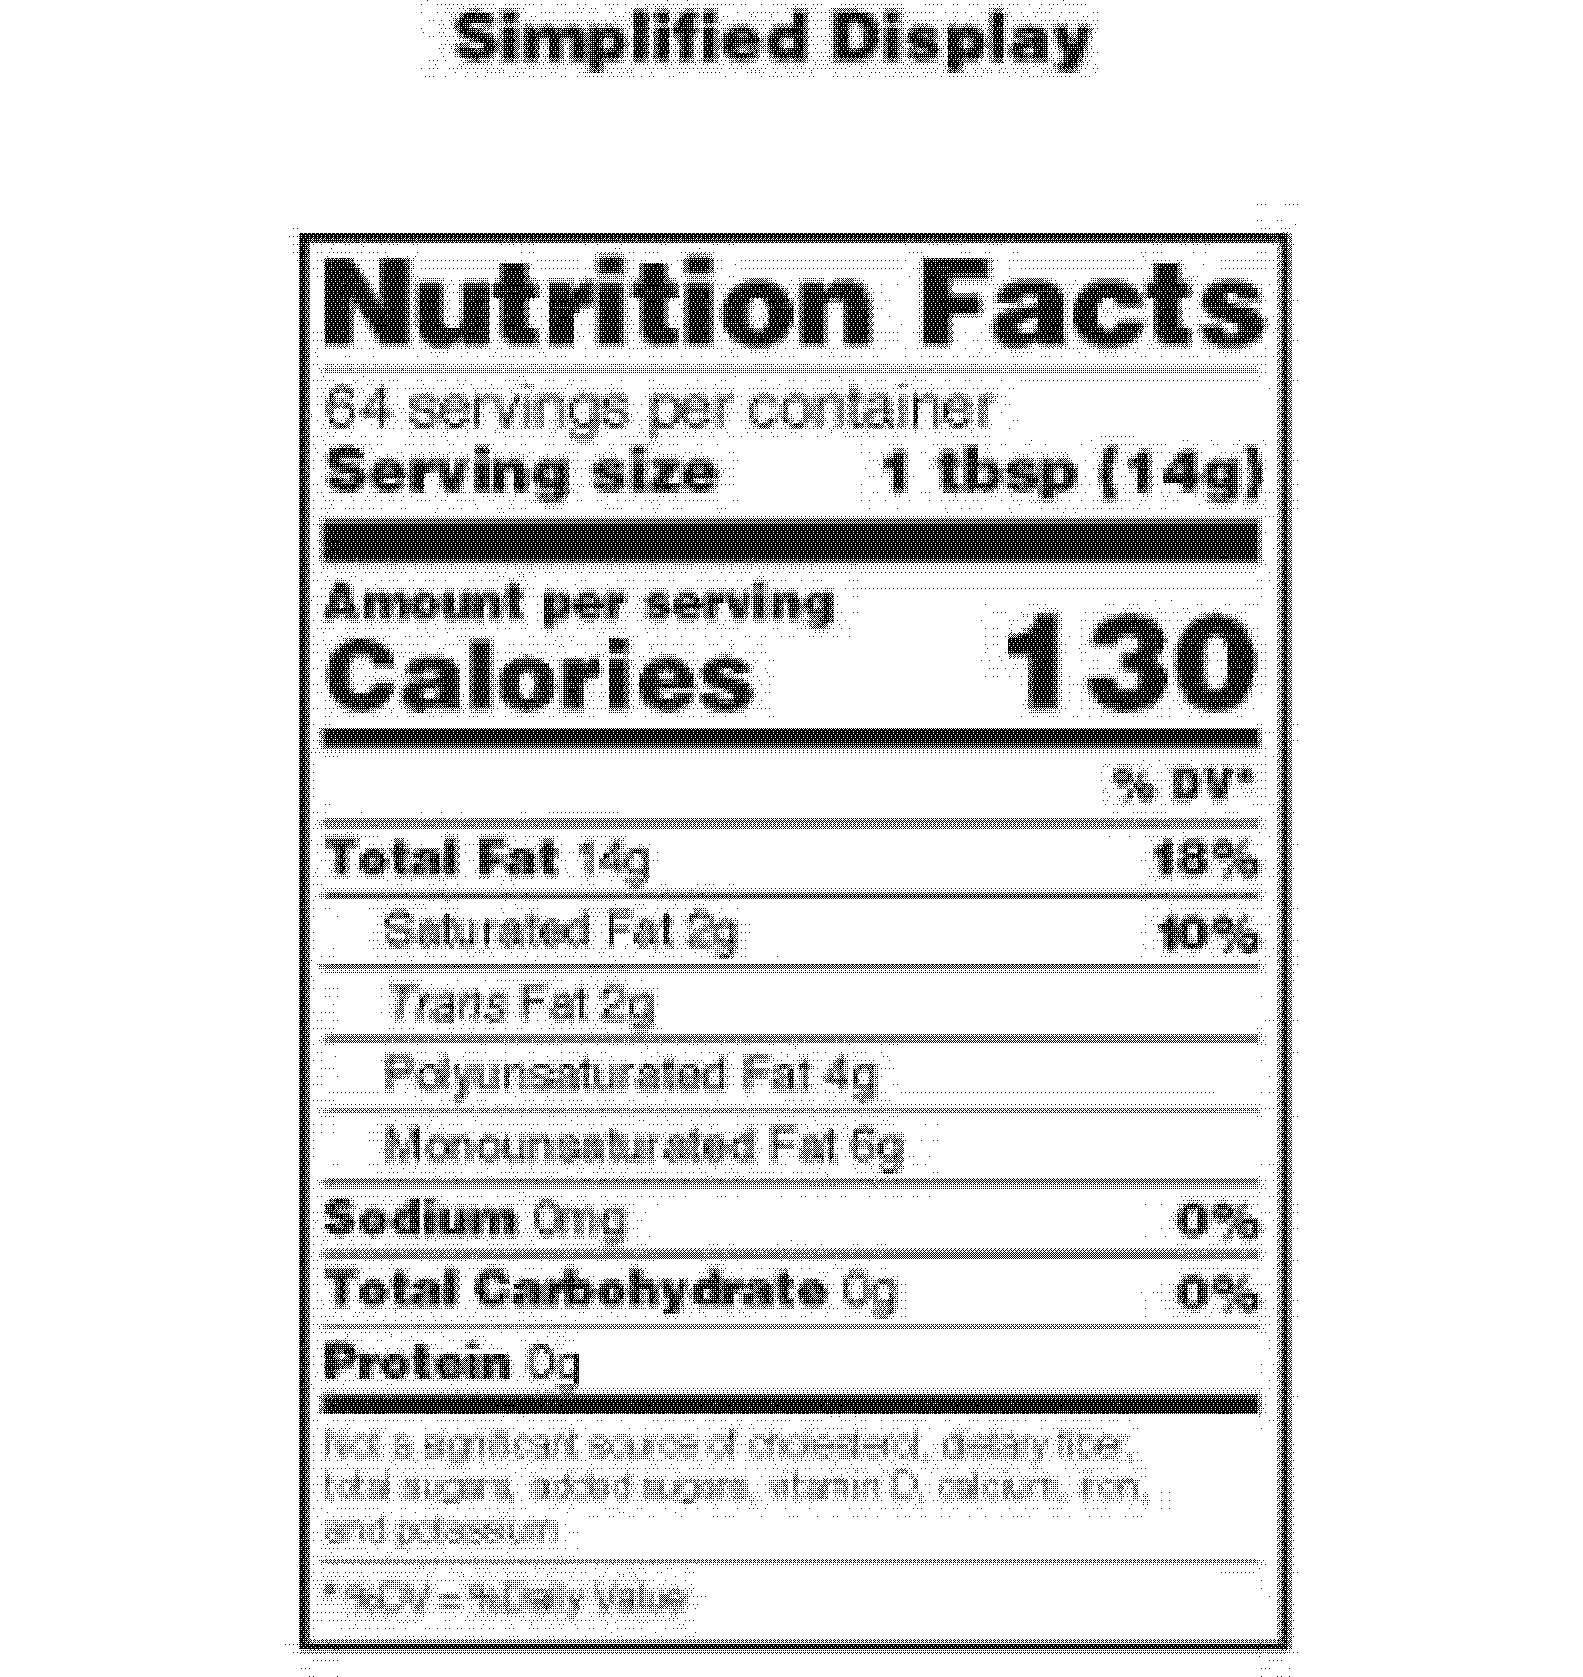 Nutrition facts label png. Federal register food labeling